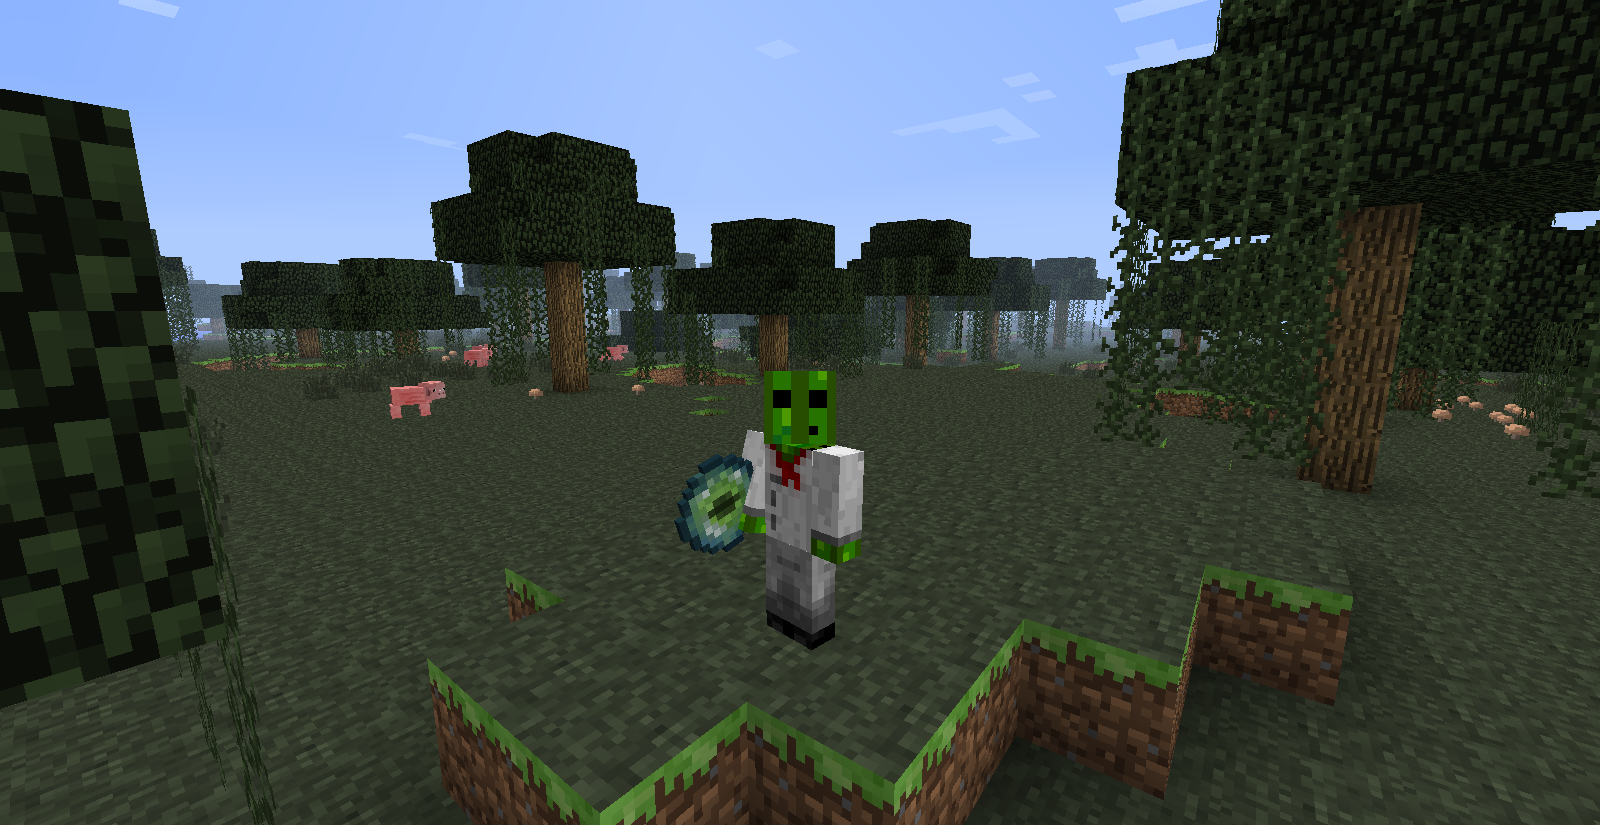 Eye of Ender – Official Minecraft Wiki